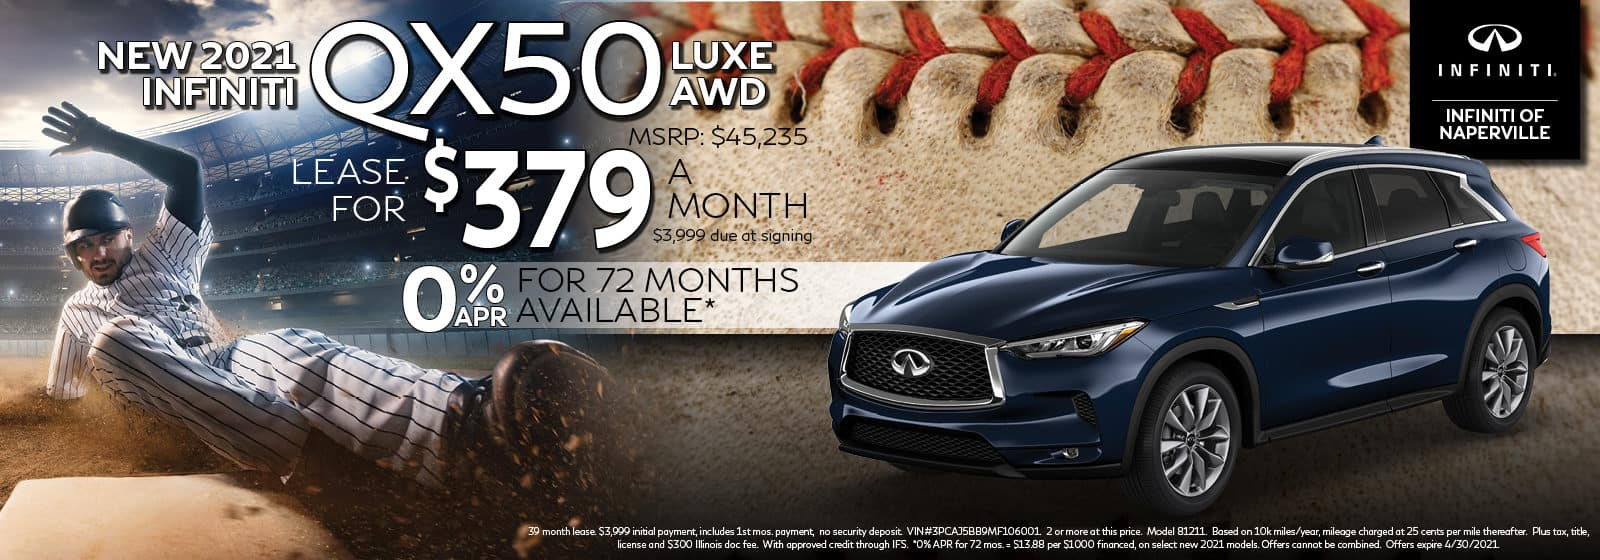 2021 QX50 Lease Offer | INFINITI of Naperville